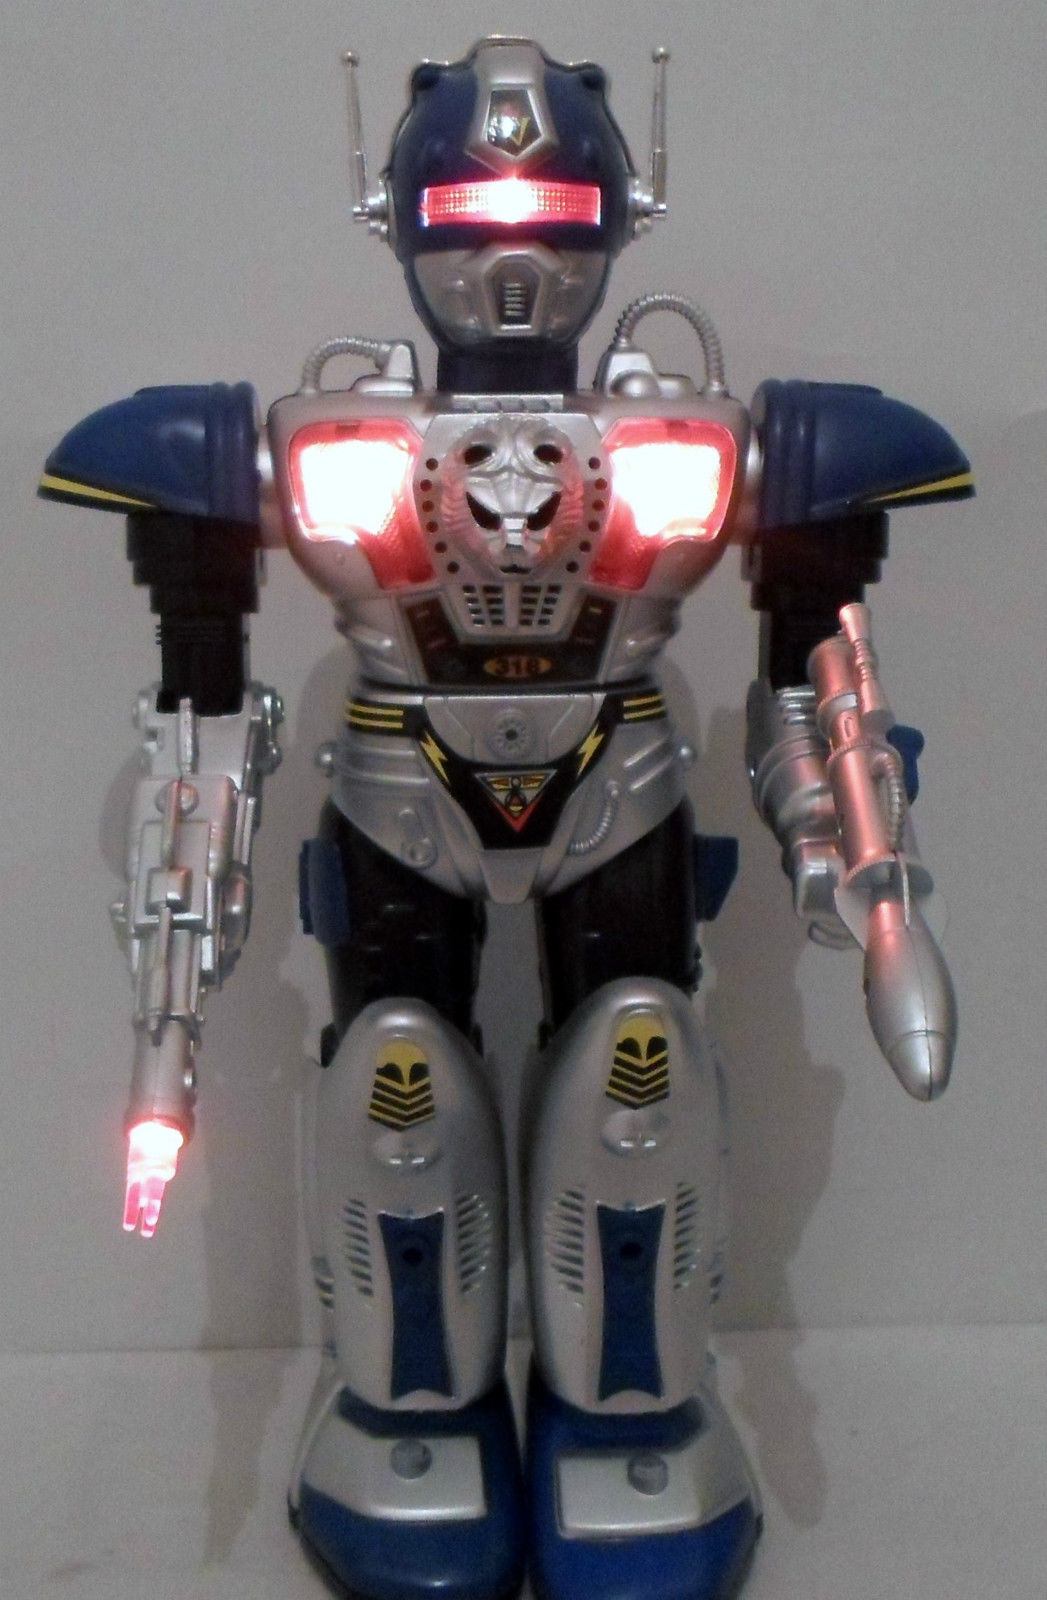 Robot Leader by Toy State - The Old Robots Web Site